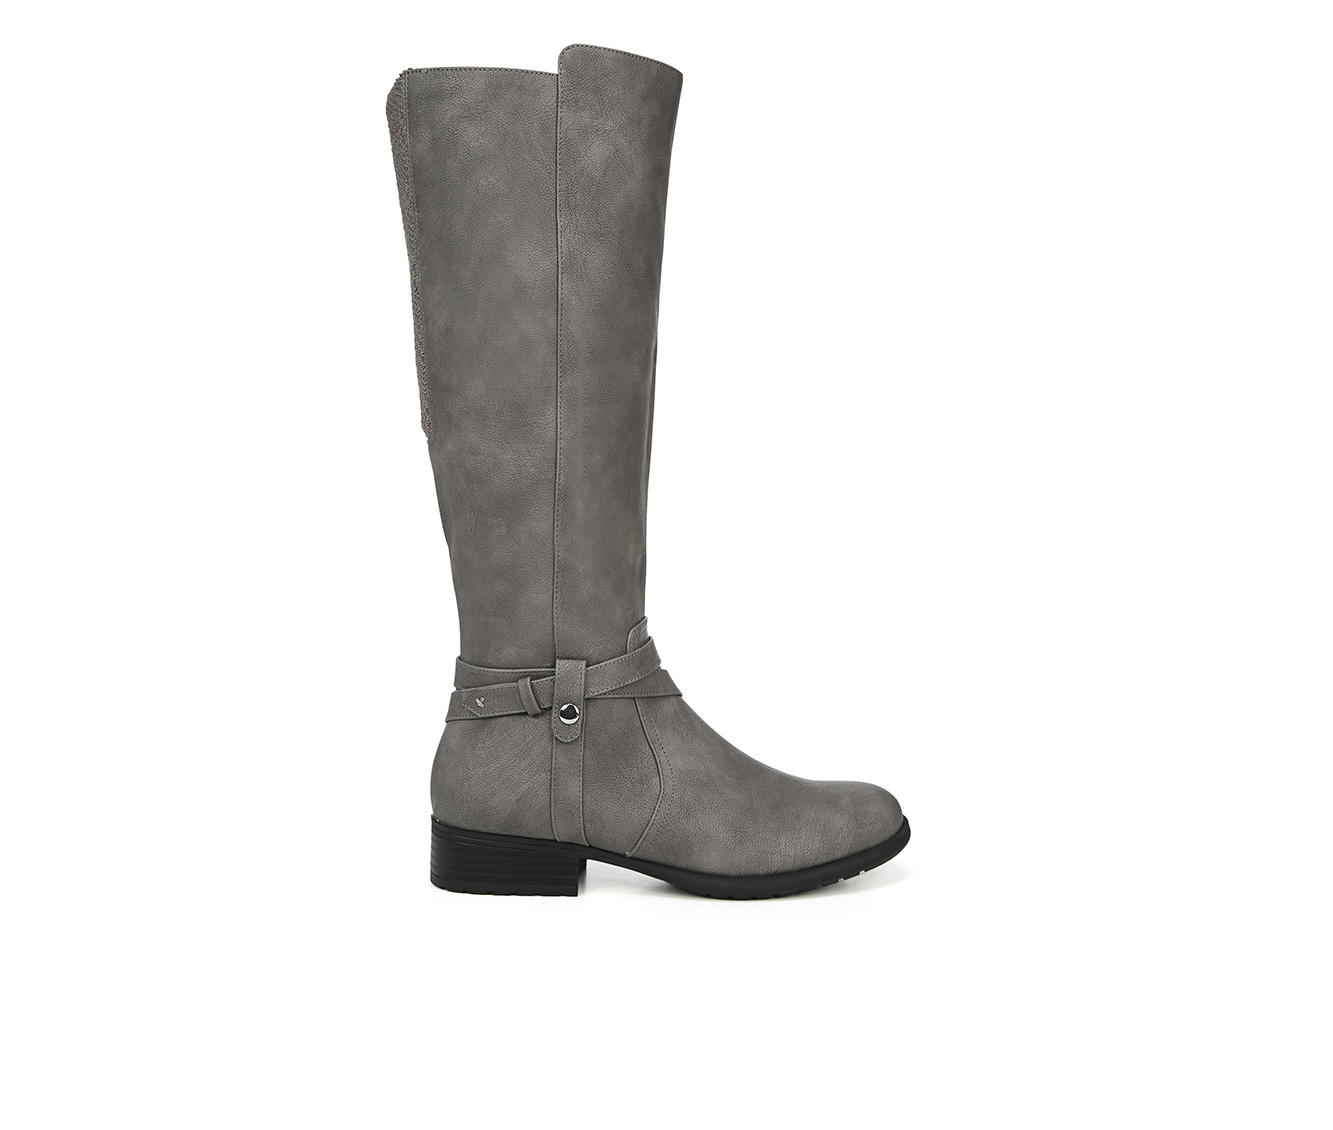 LifeStride Xtrovert Women's Boots (Gray - Faux Leather)